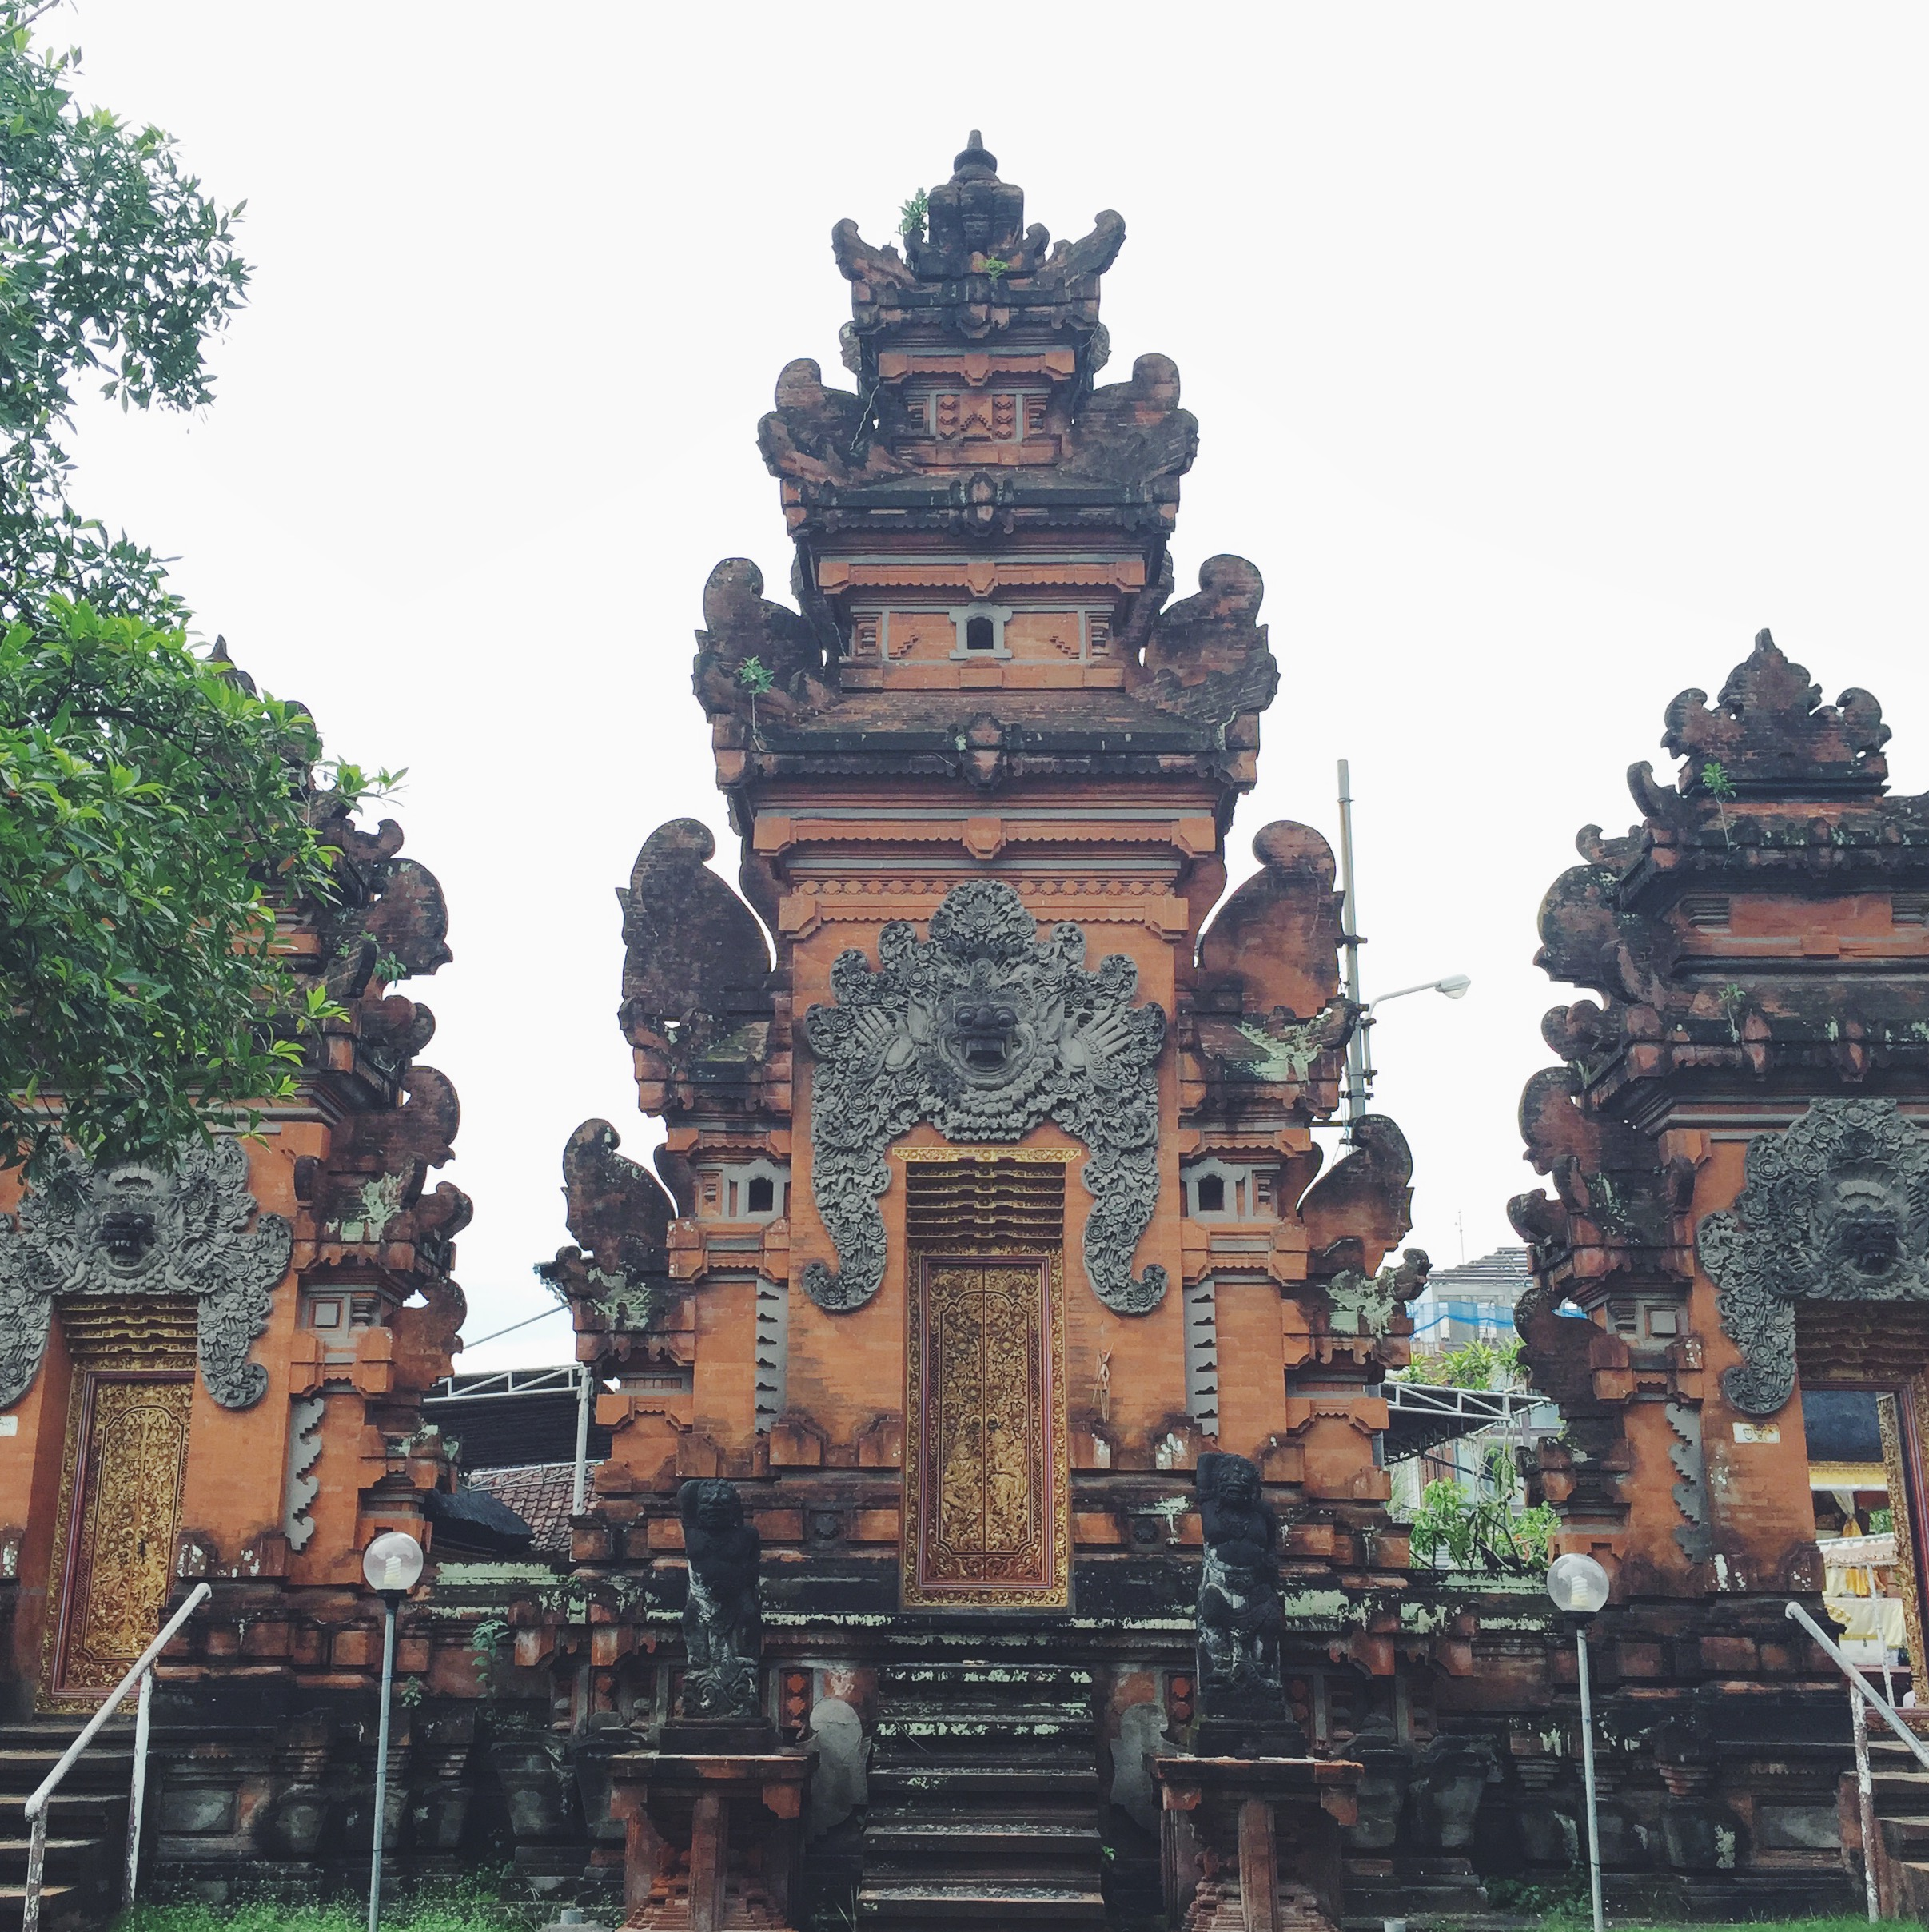 One of the many temples we visited.